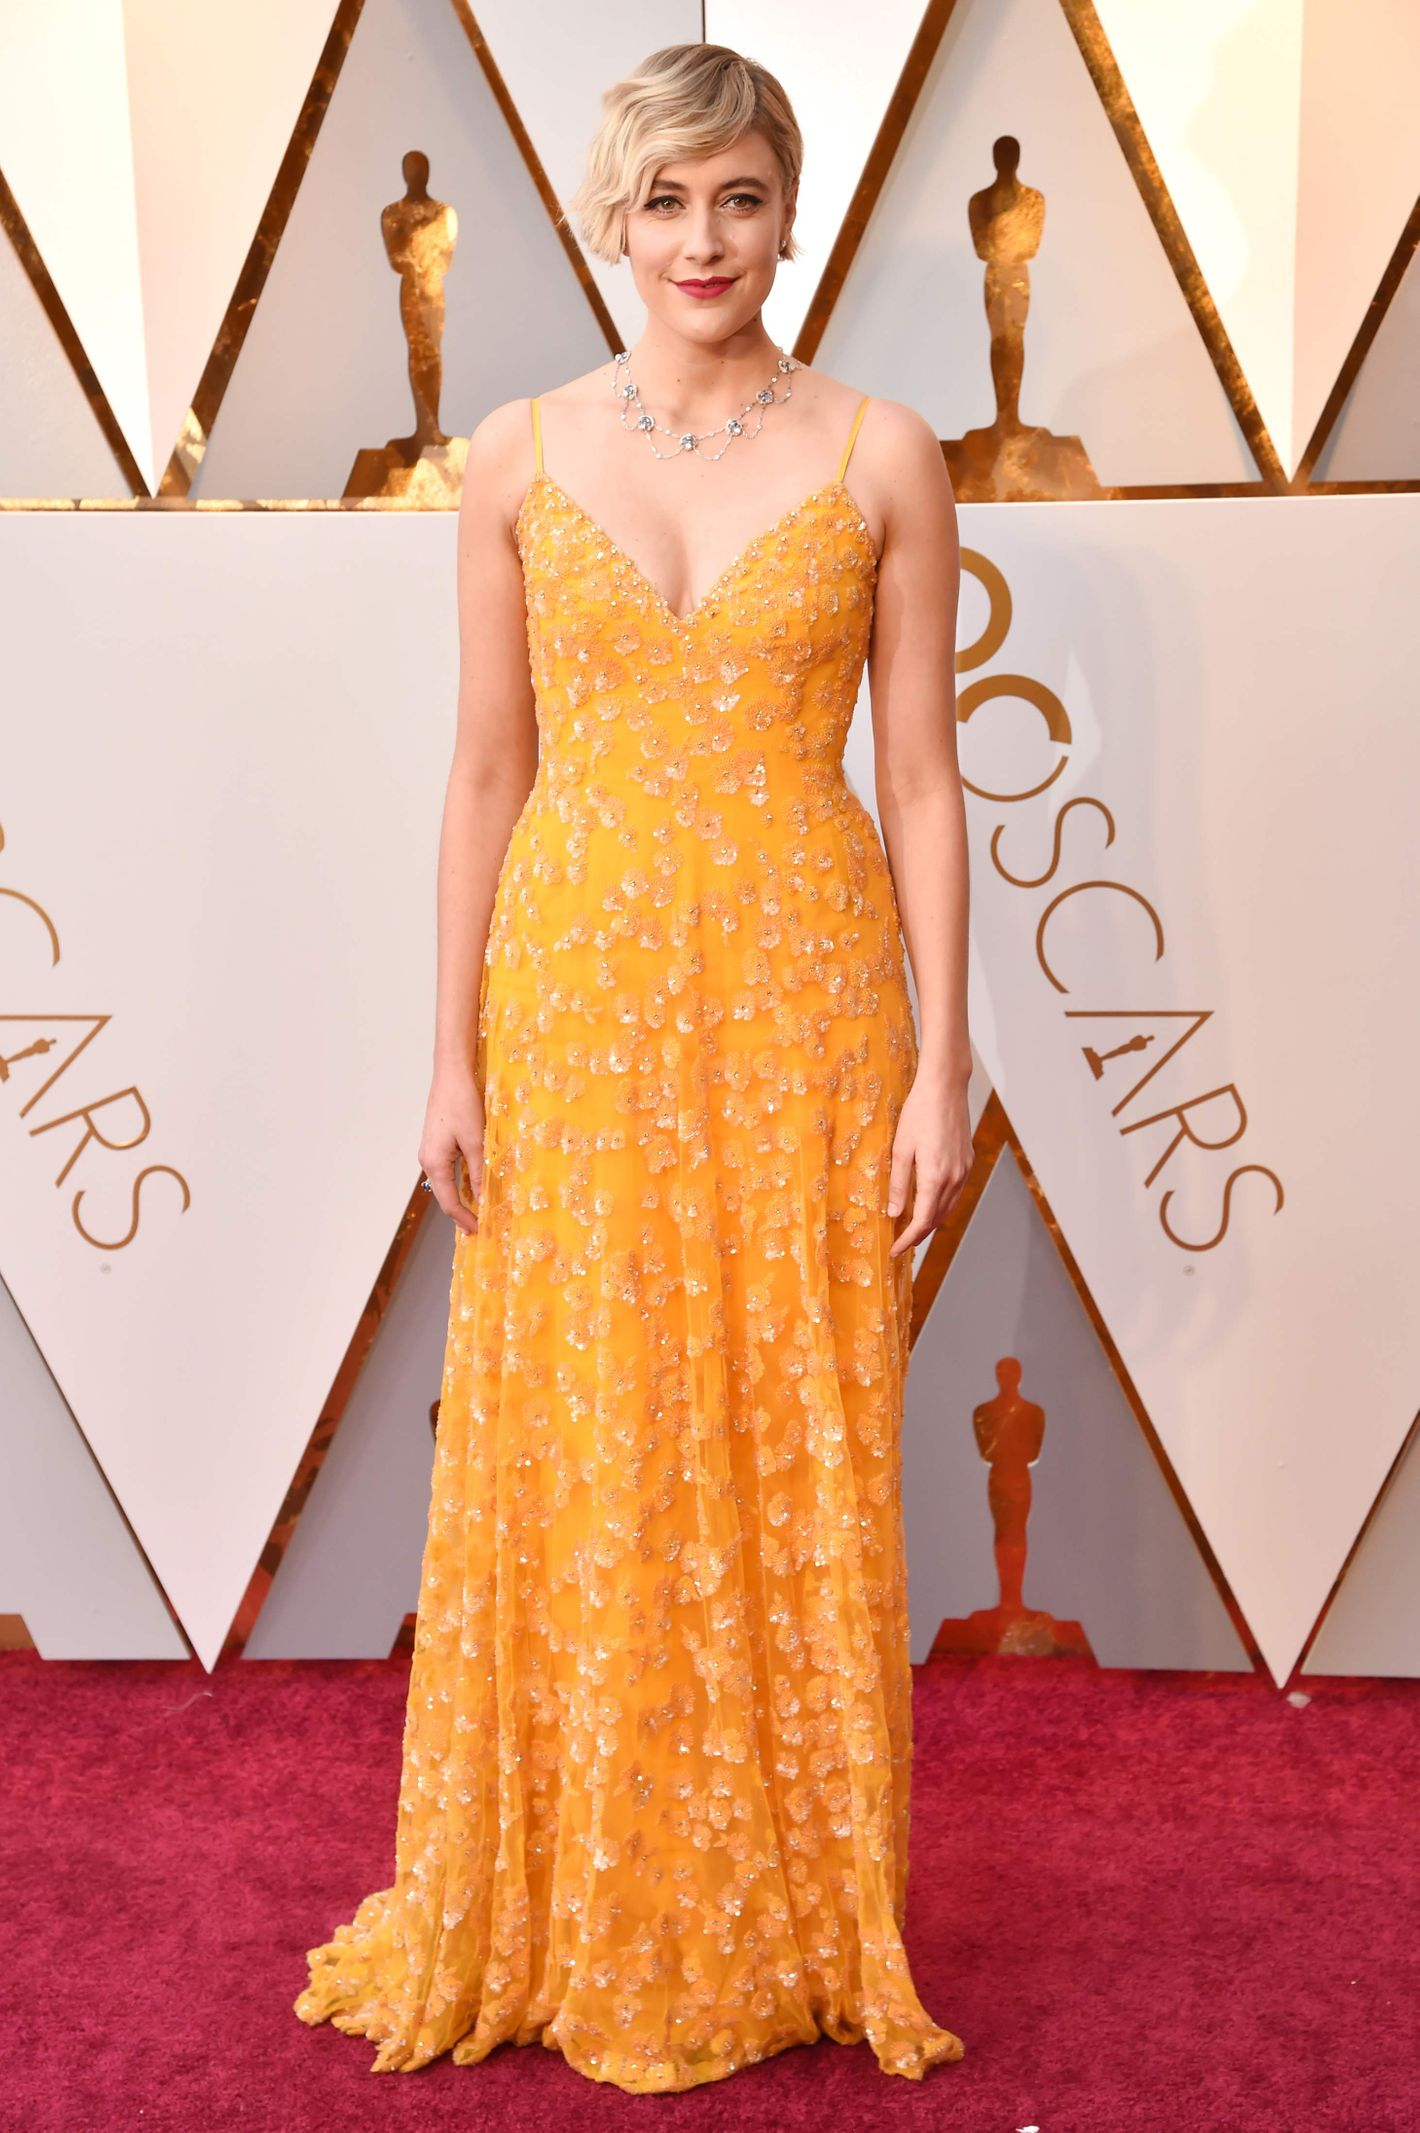 The 14 Best Red Carpet Dresses From the Oscars 2018 afc0e7fe9